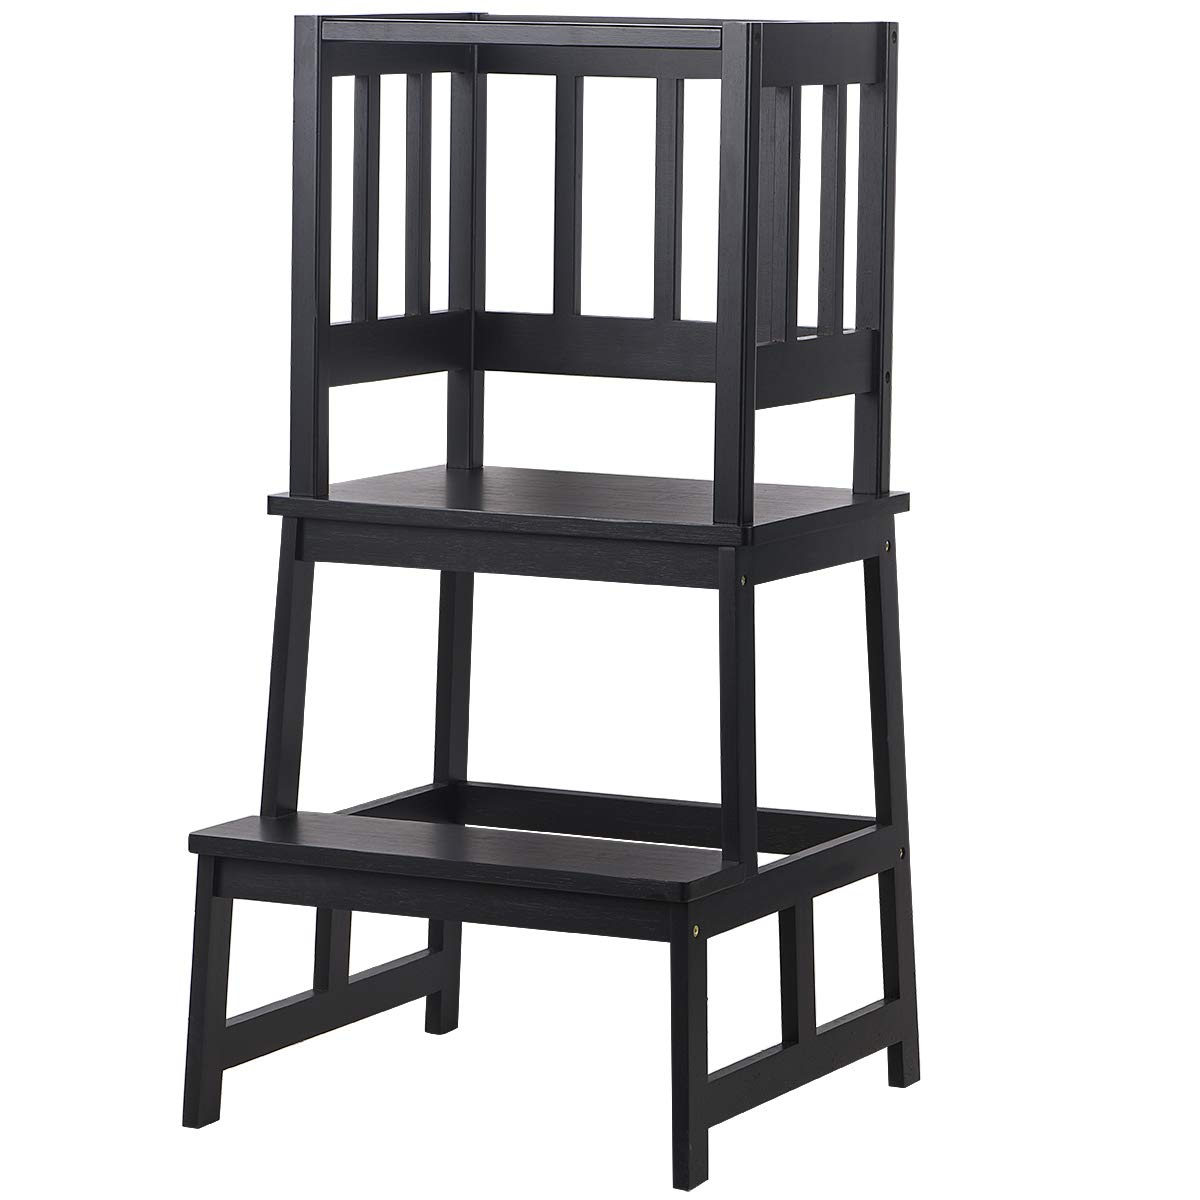 SUNYAO Kids Kitchen Step Stool with Safety Rail - Bamboo Learning Tower for Toddlers 18 Months and Older, Black Color